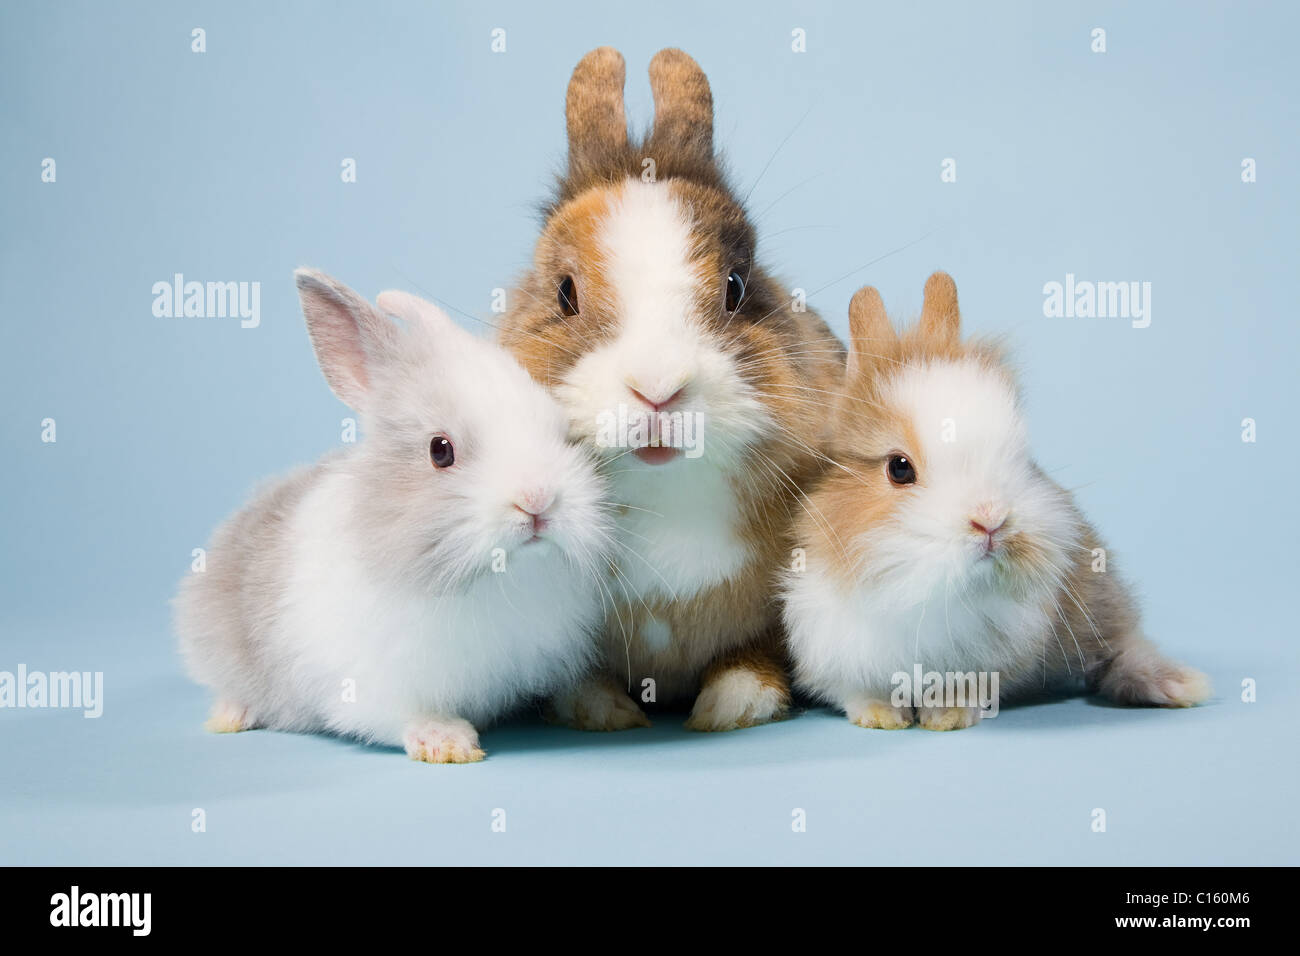 Three rabbits, studio shot - Stock Image